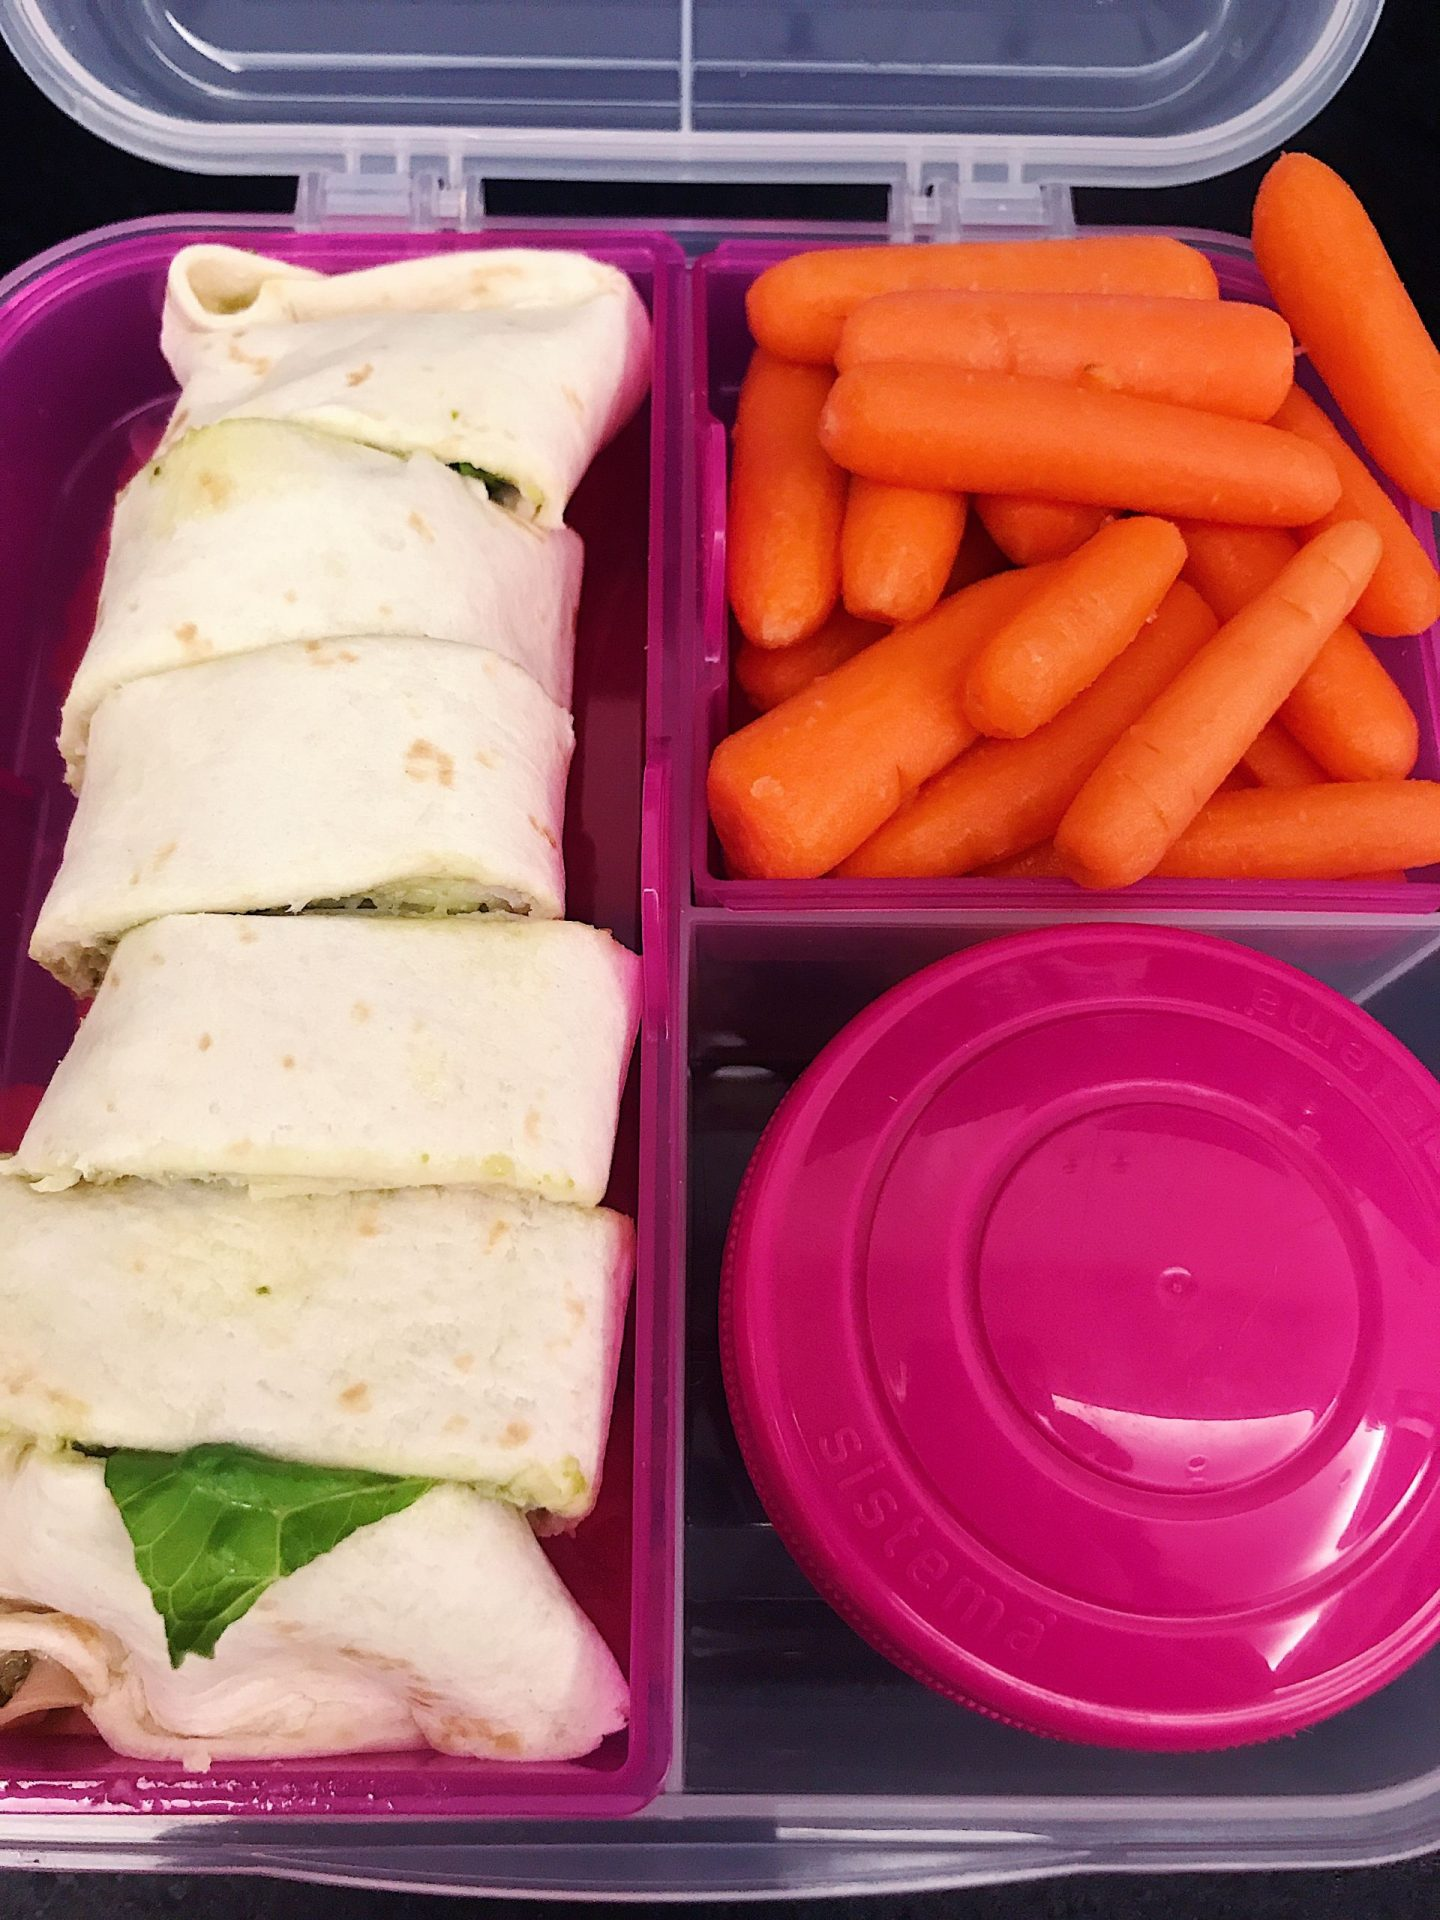 One of my four lunches